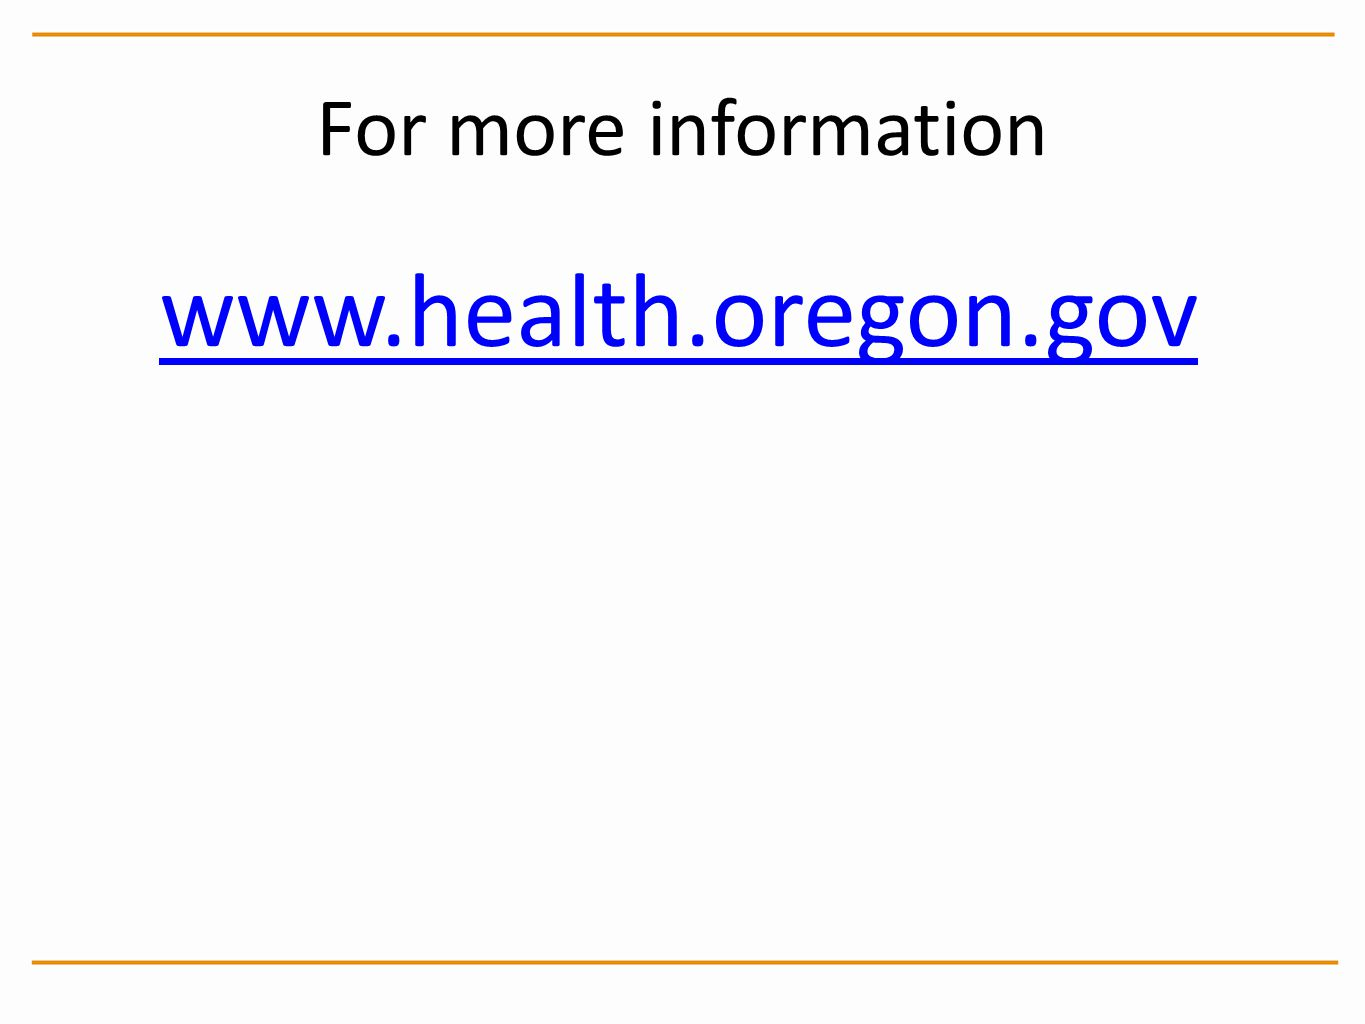 For more information www.health.oregon.gov